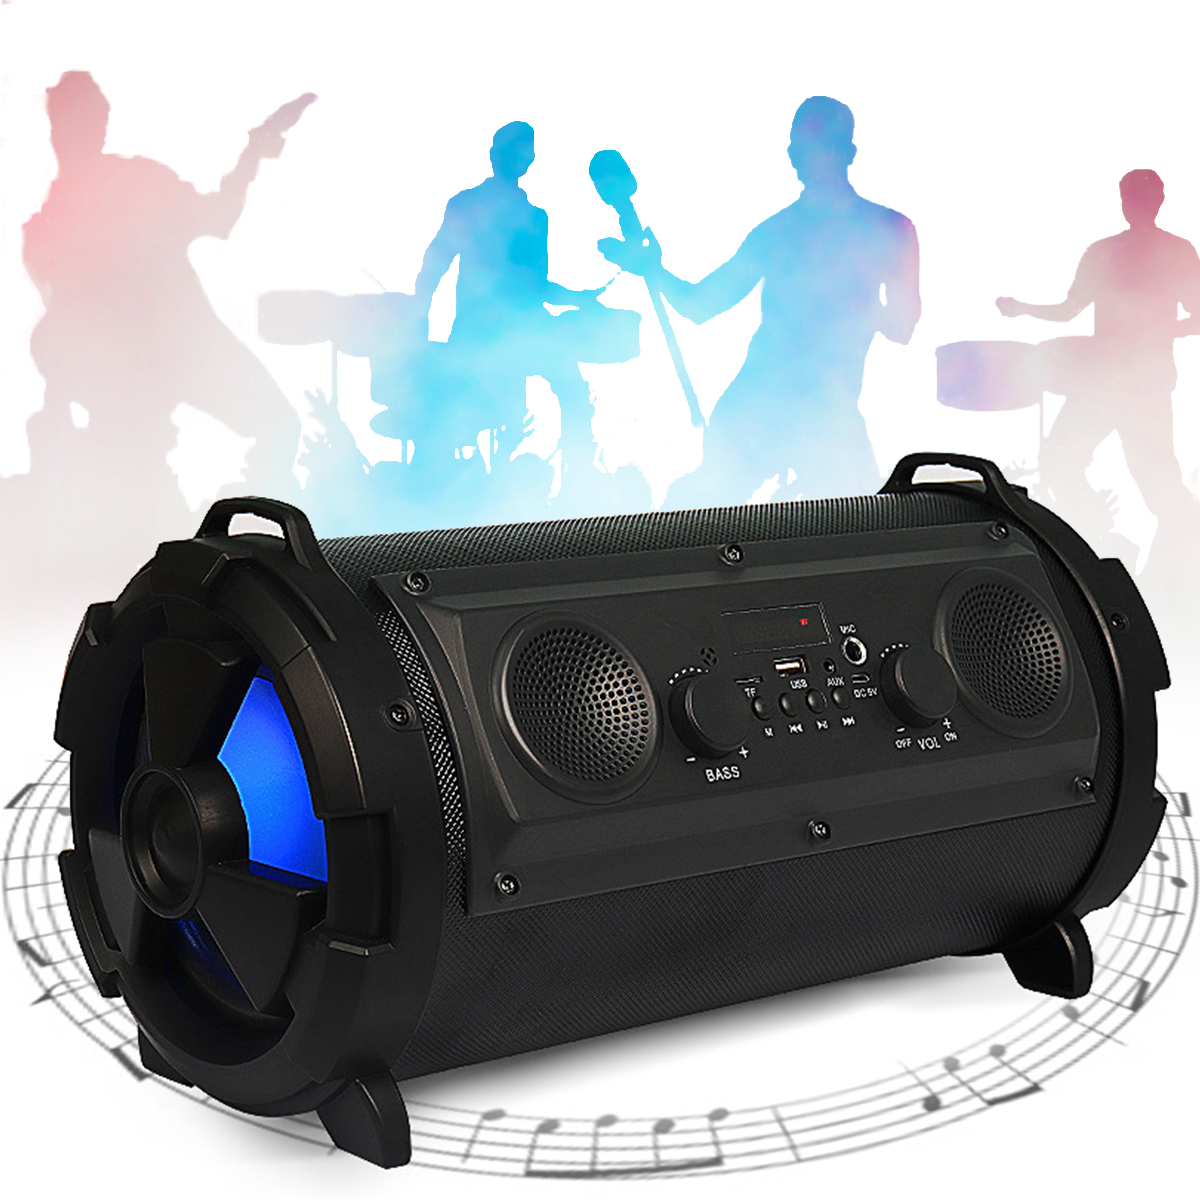 Portable Wireless Bluetooth Speaker Subwoofer With Misic Super Bass Speakers HIFI Stereo TF Card Outdoor Loundspeaker exrizu ms 136bt portable wireless bluetooth speakers 15w outdoor led light speaker subwoofer super bass music boombox tf radio